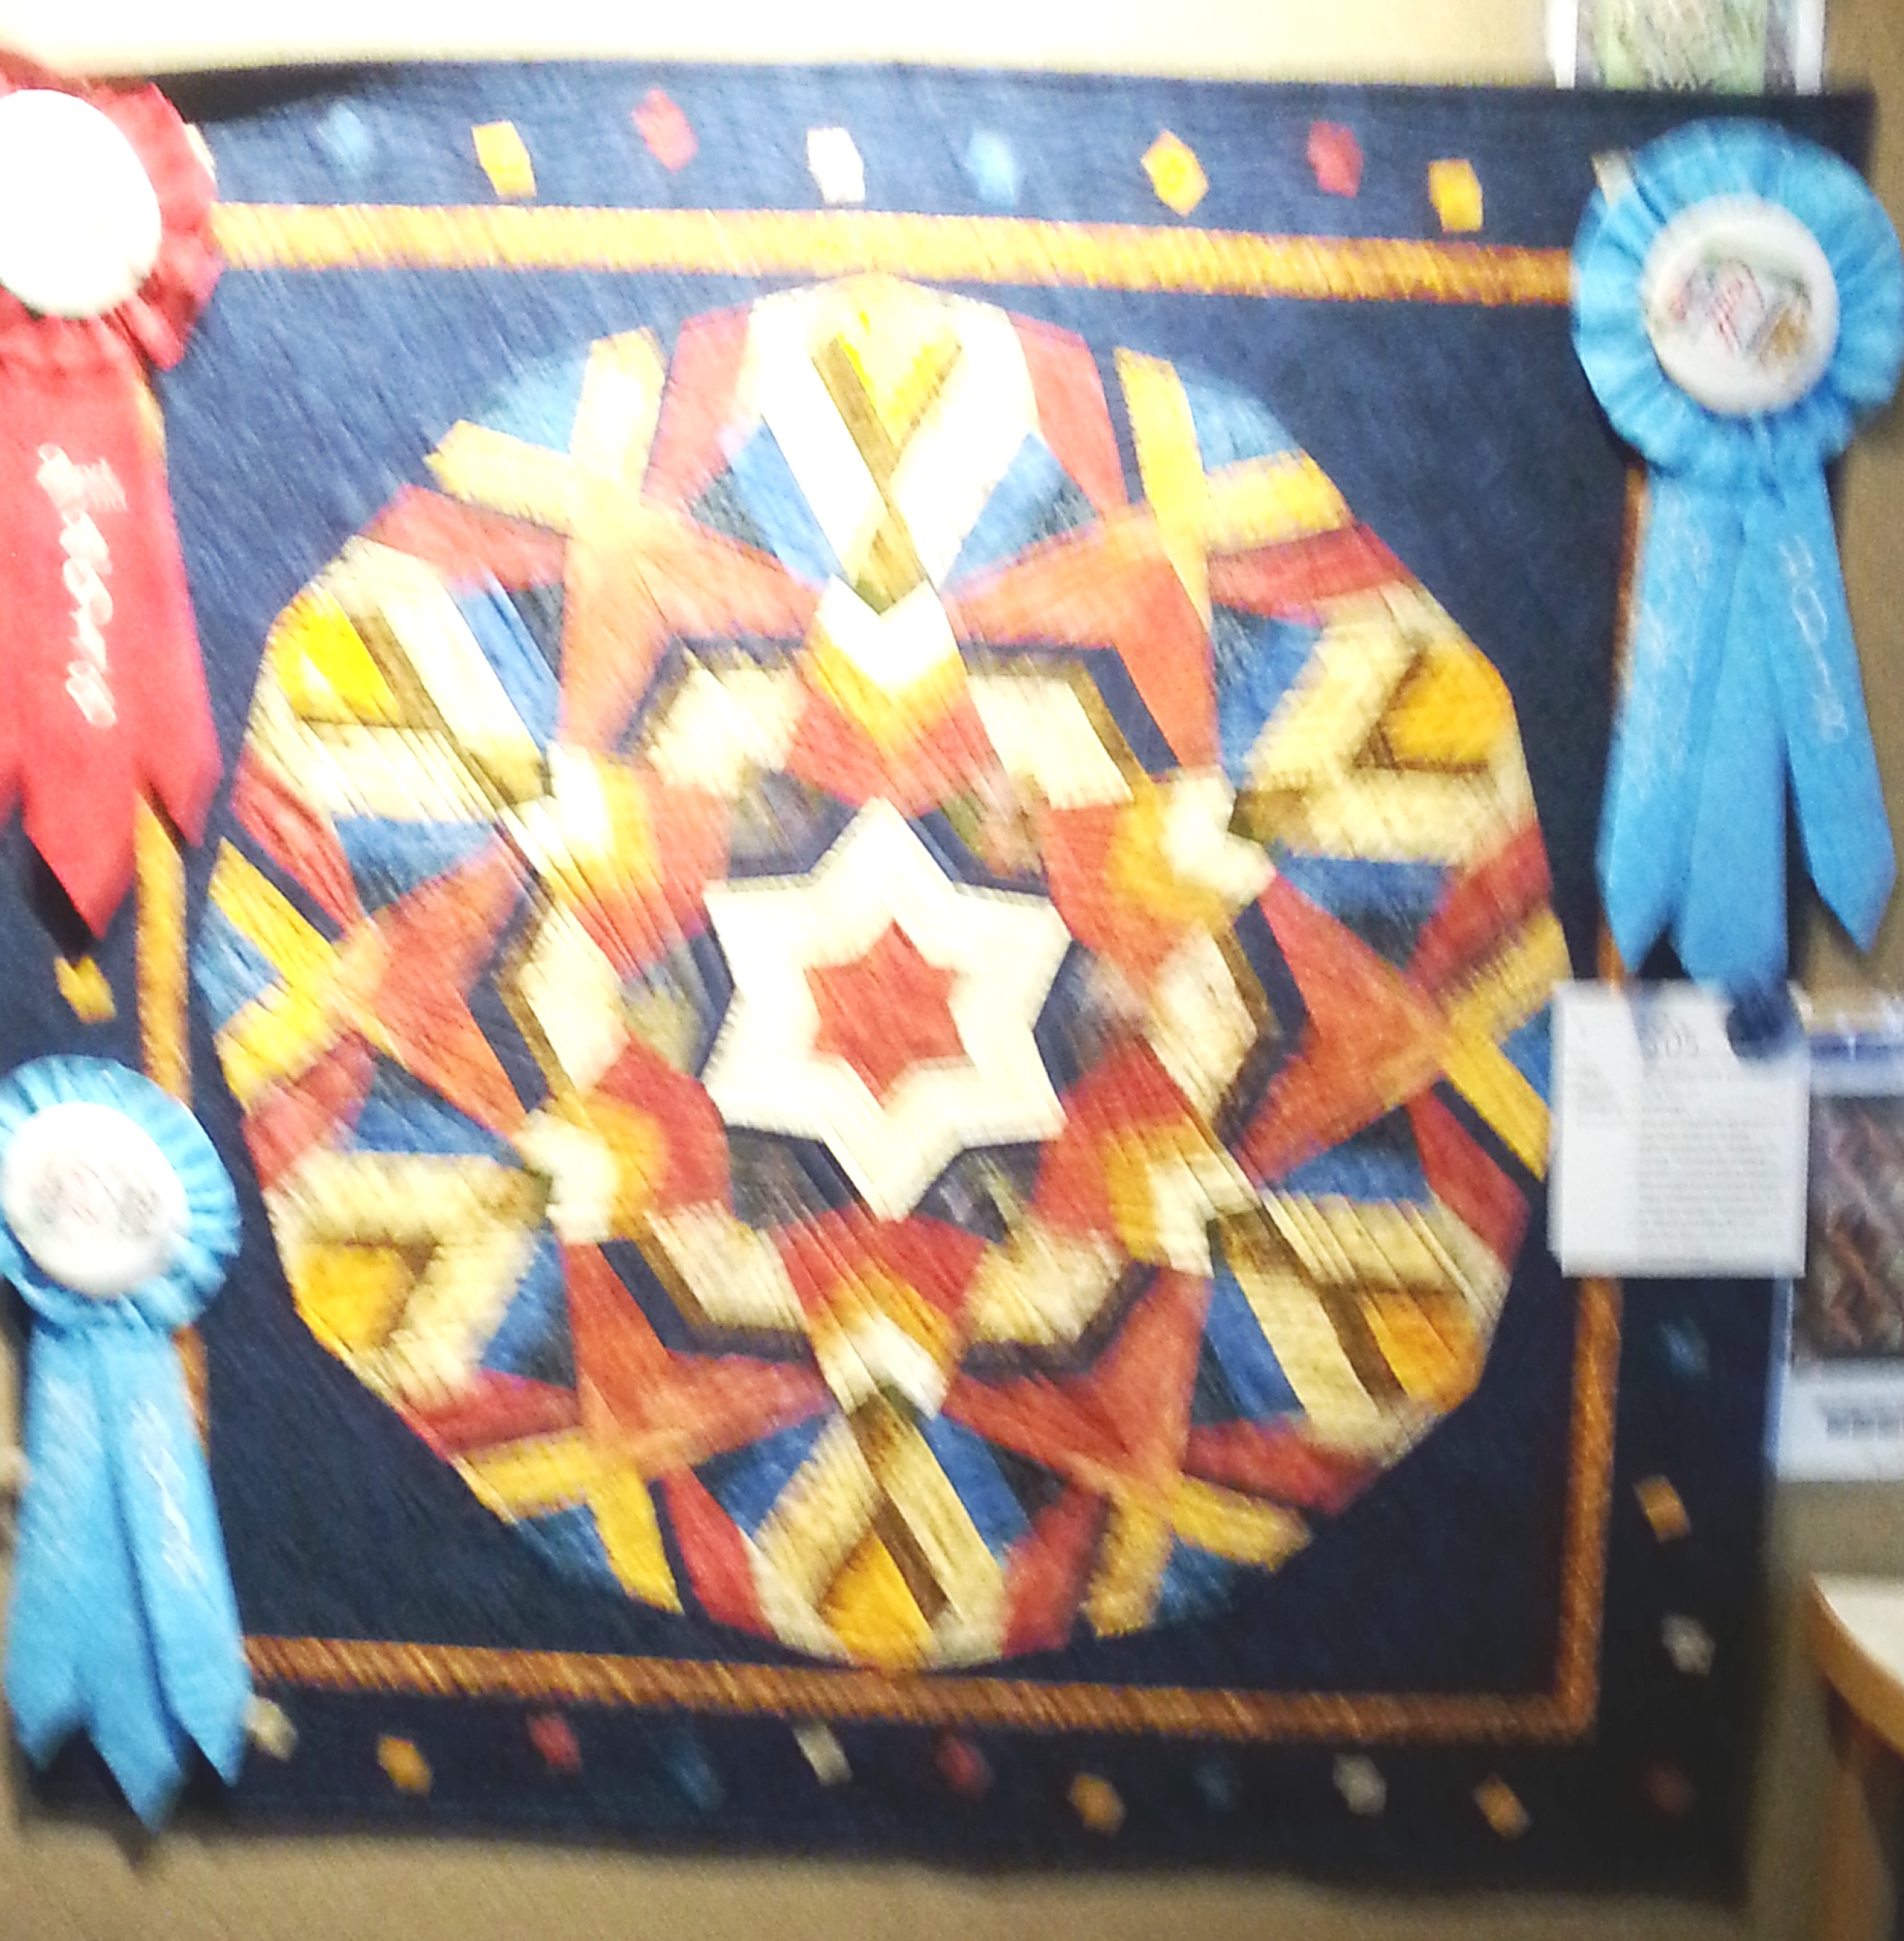 Best Machine Quilting and 2nd Place - Challenge